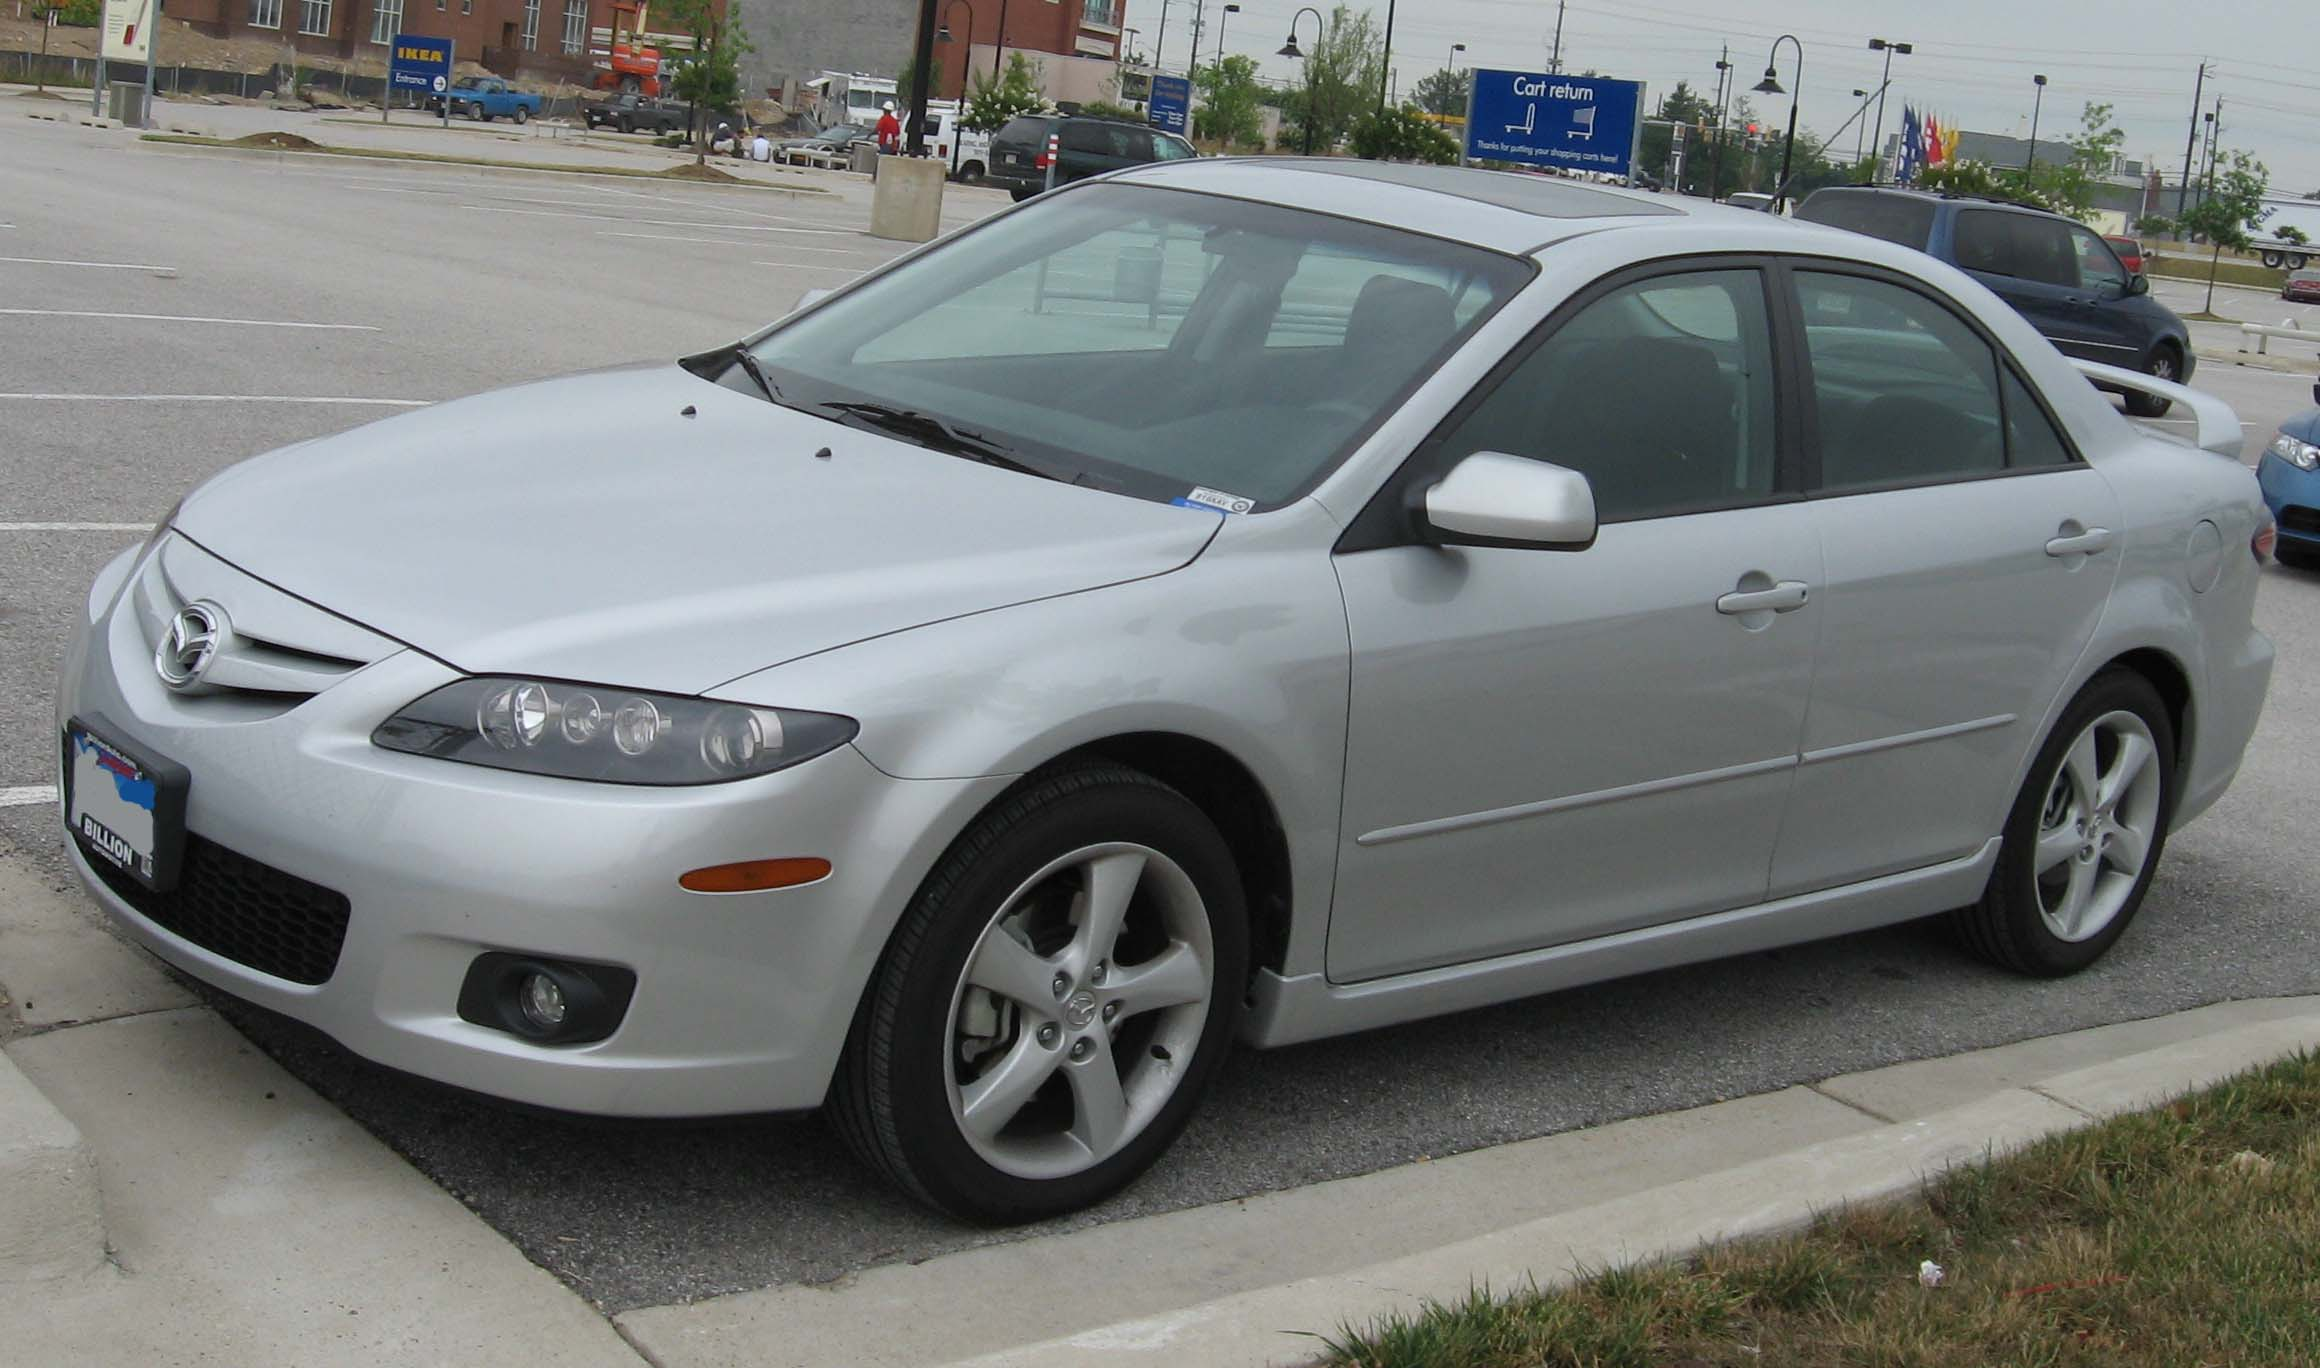 http://auto-database.com/image/pictures-of-mazda-mazda-6-sport-2002-159738.jpg